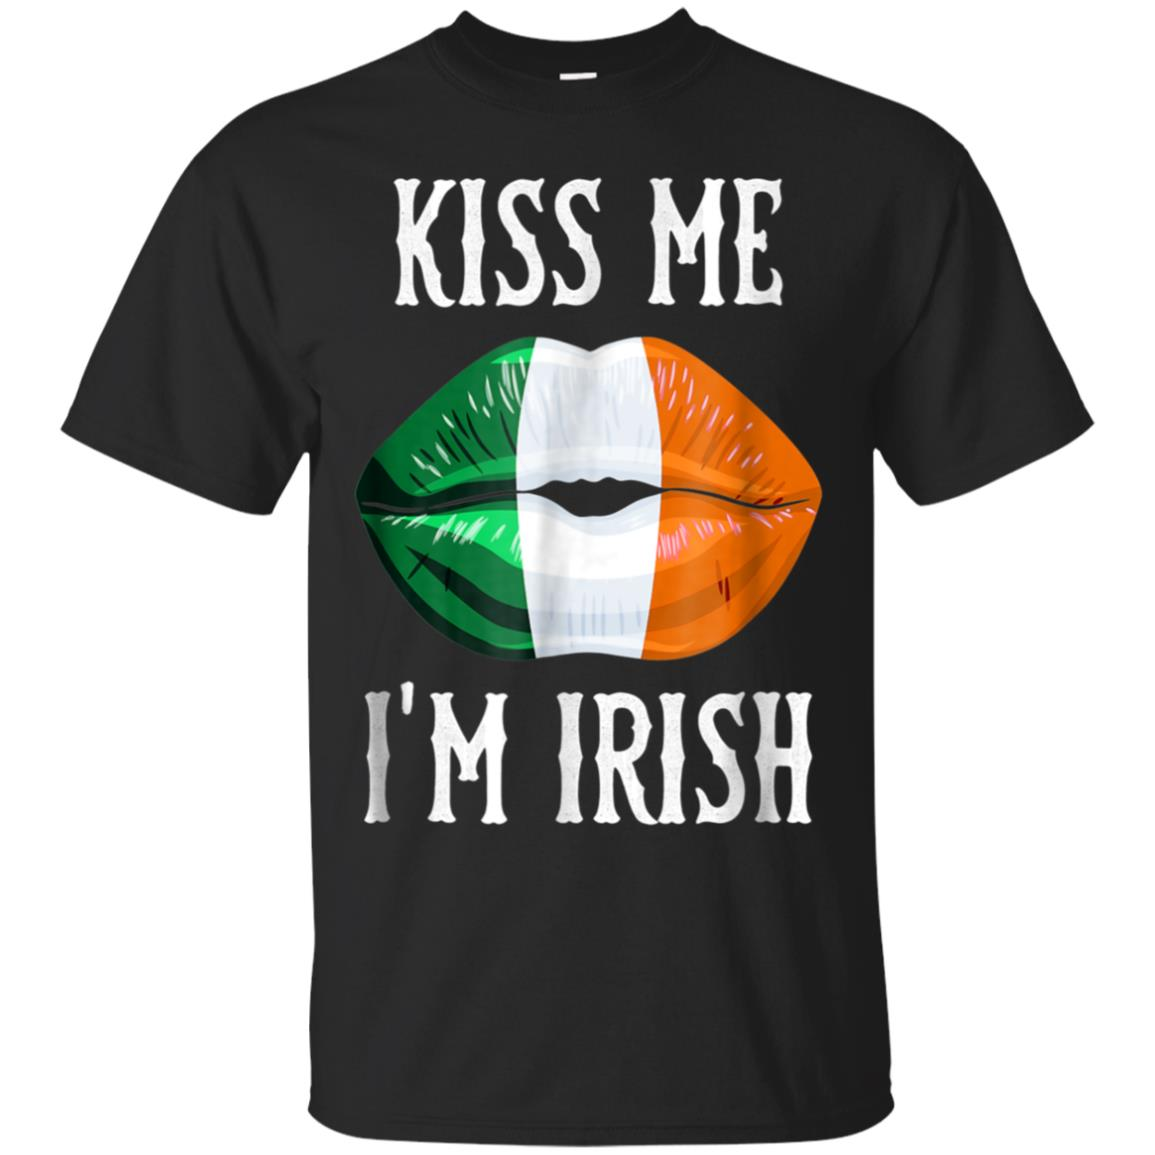 Kiss Me! I'm Irish! Flag Lips, Ireland Pride T-Shirt 99promocode